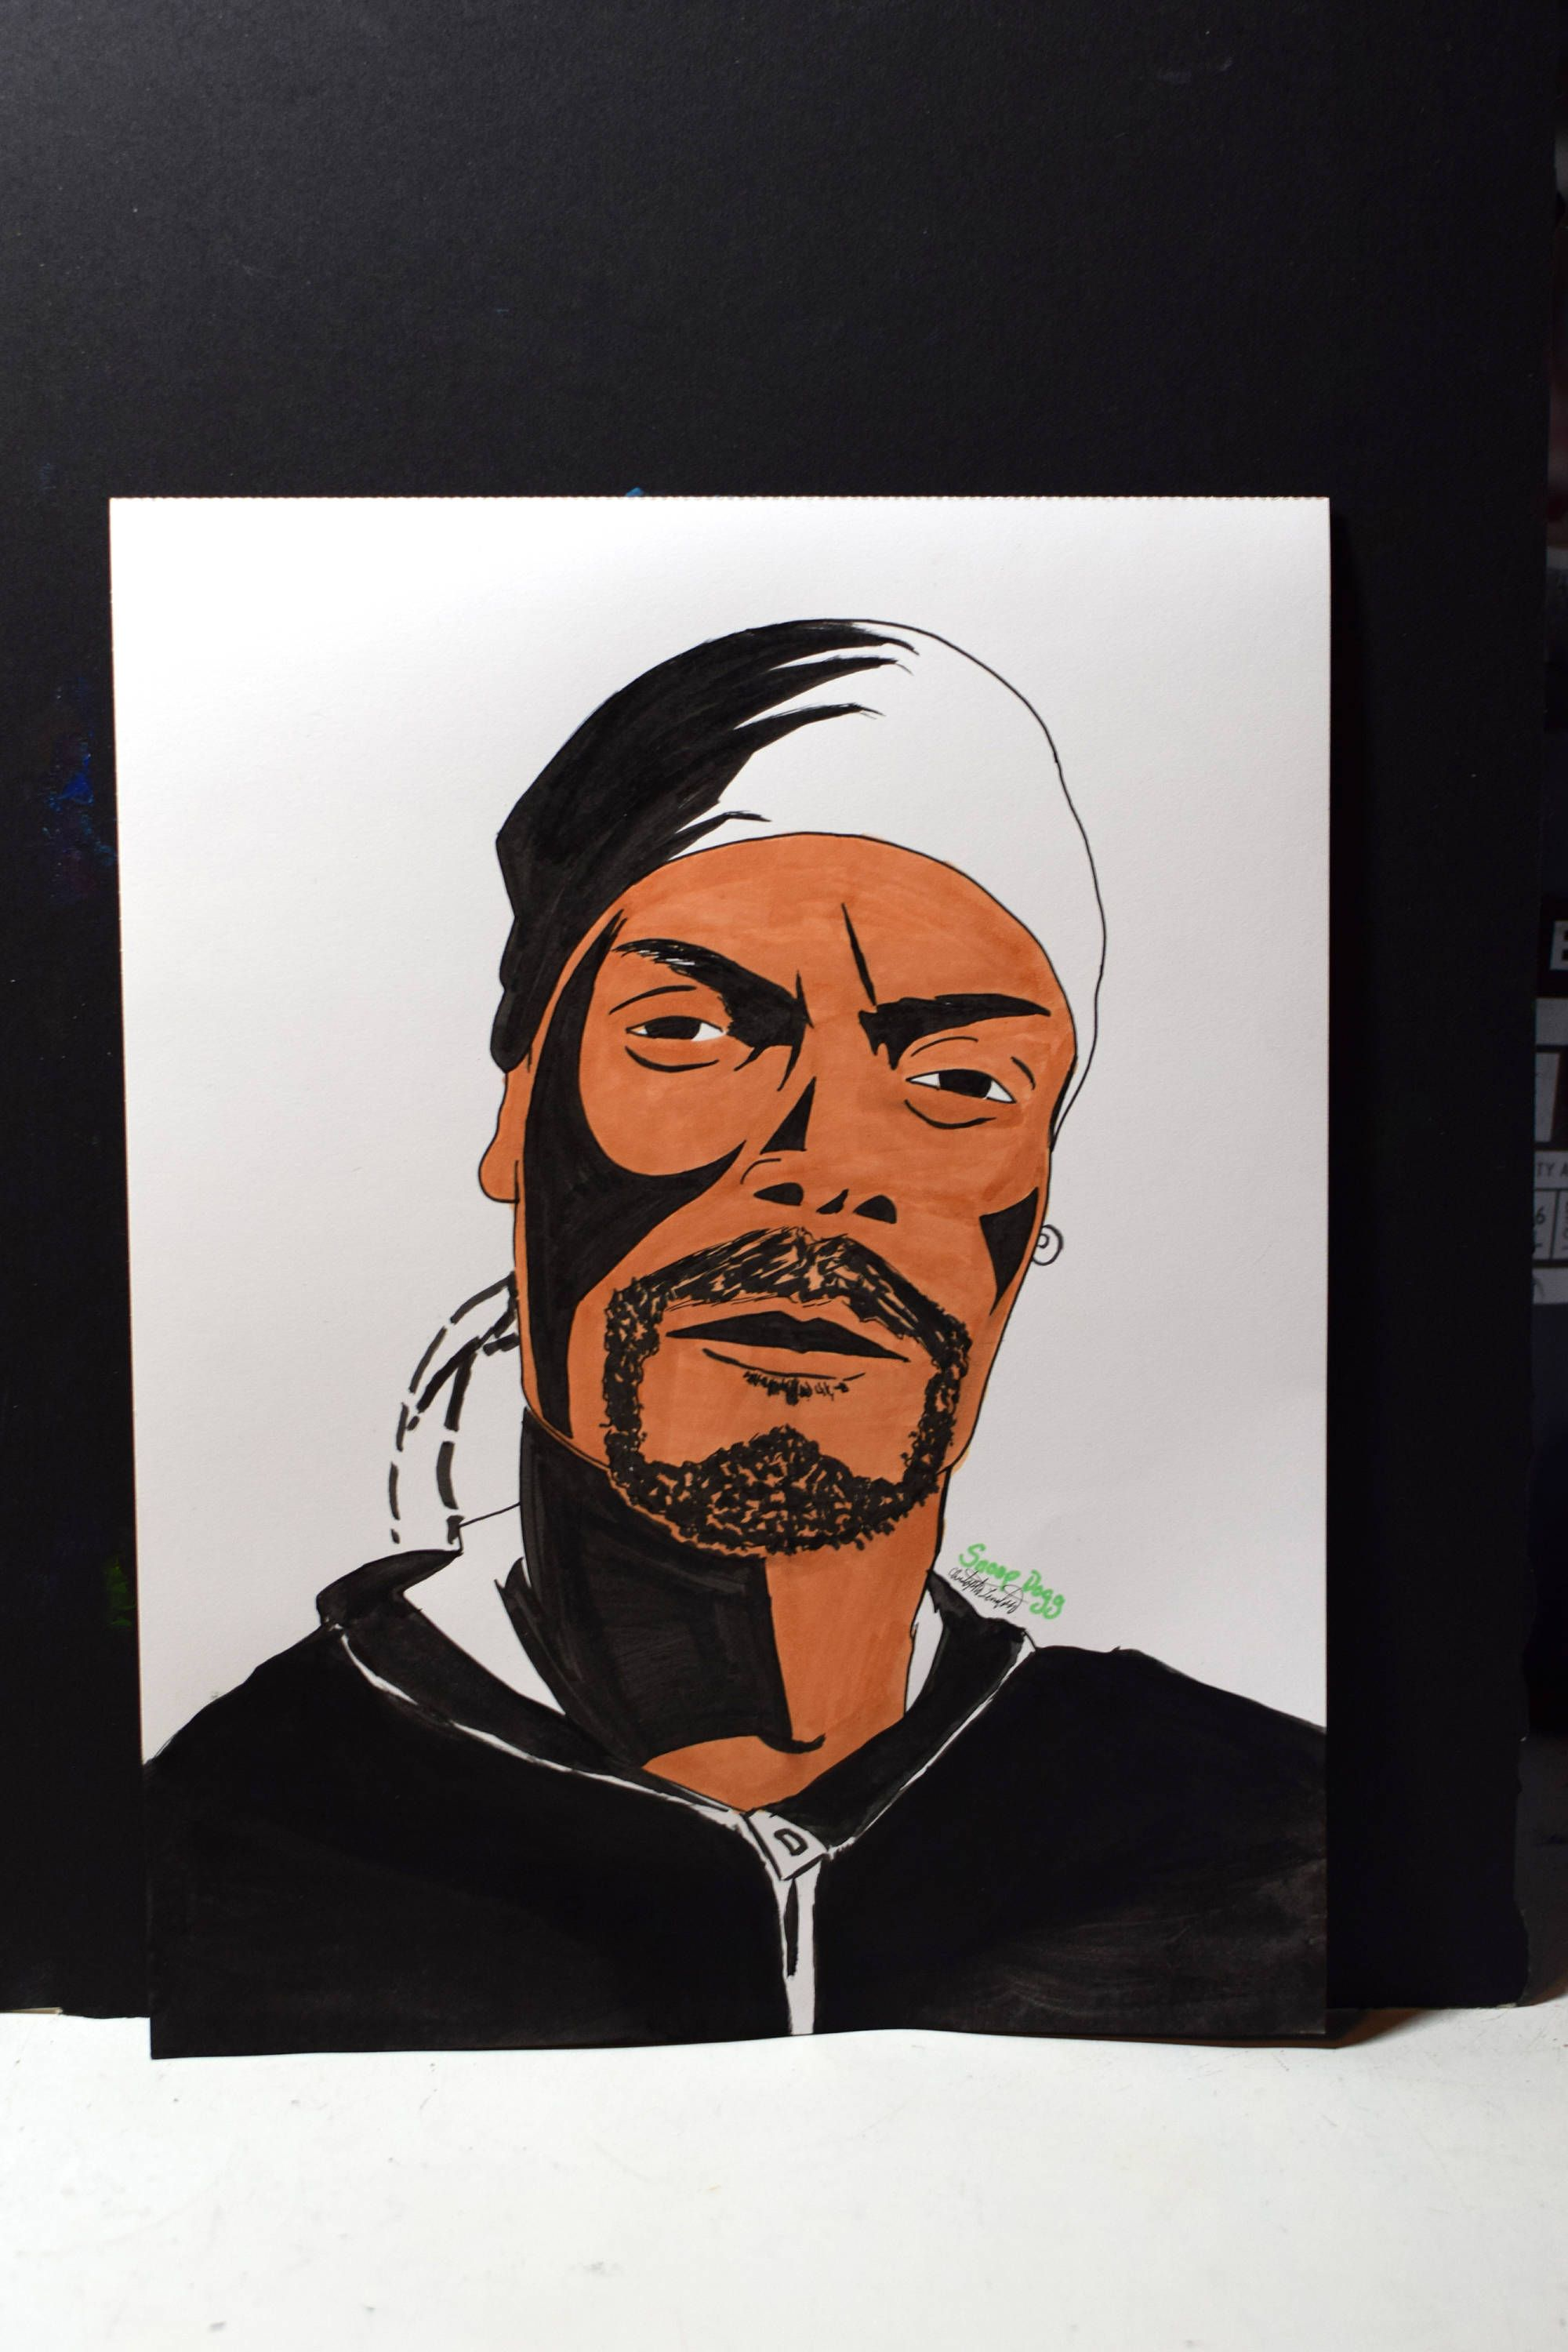 Original Copic Illustration Of Snoop Dogg Copic Drawings Famous